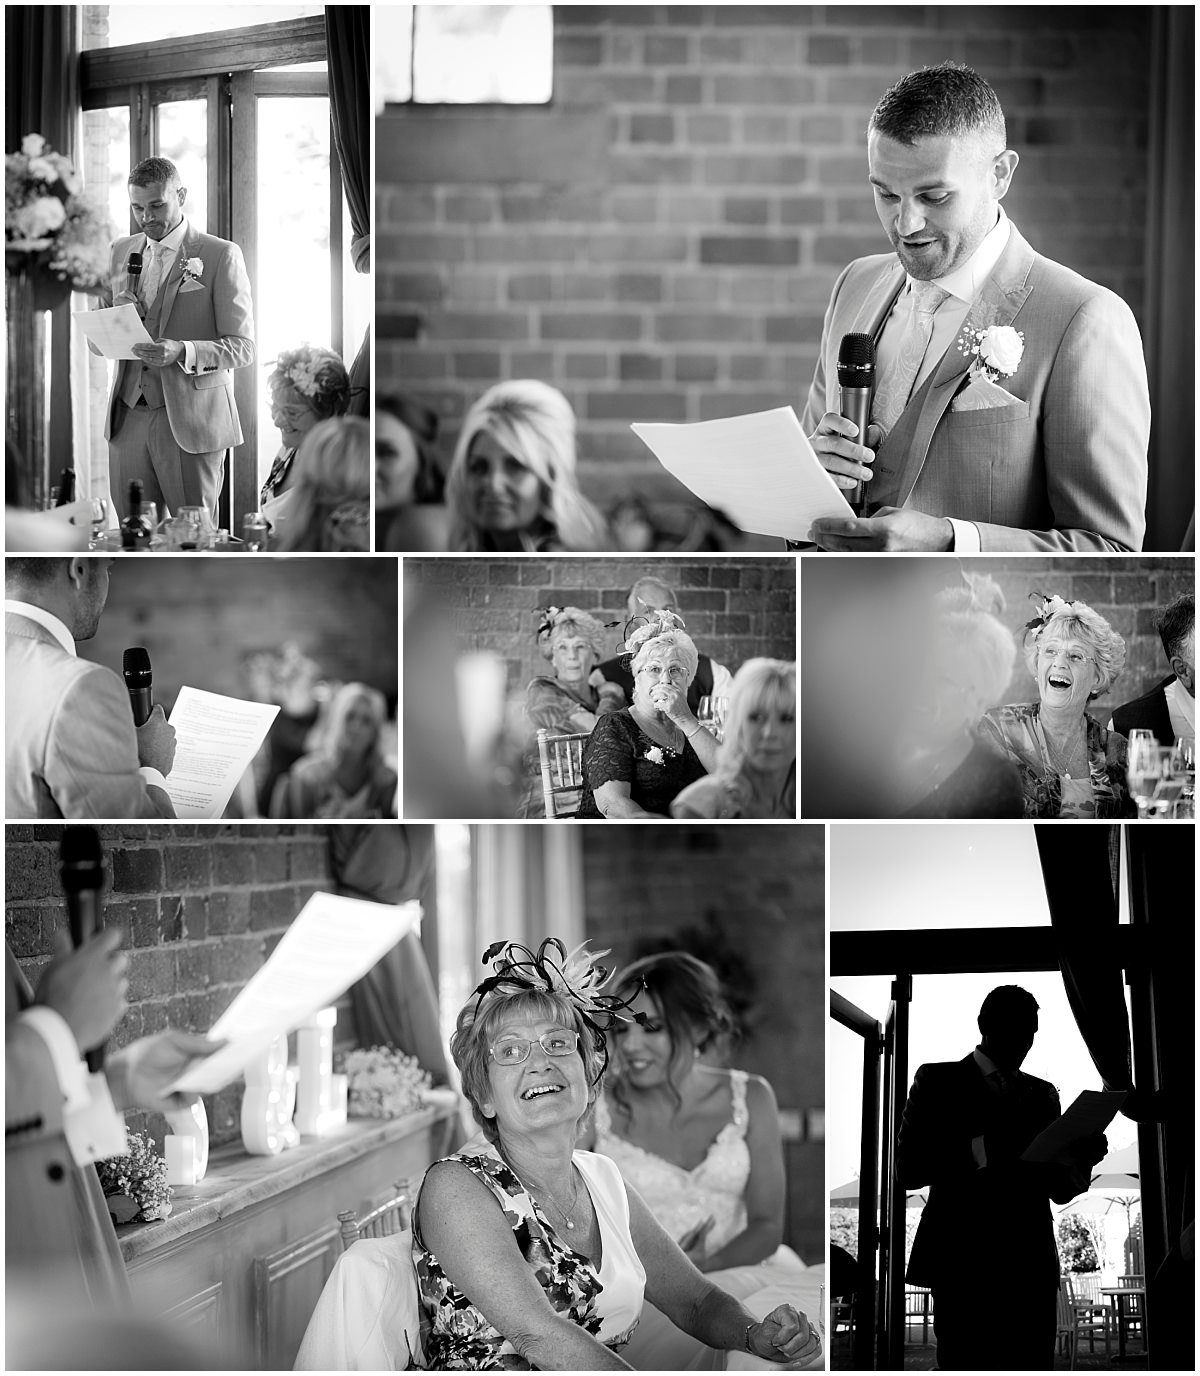 Speeches in black and white